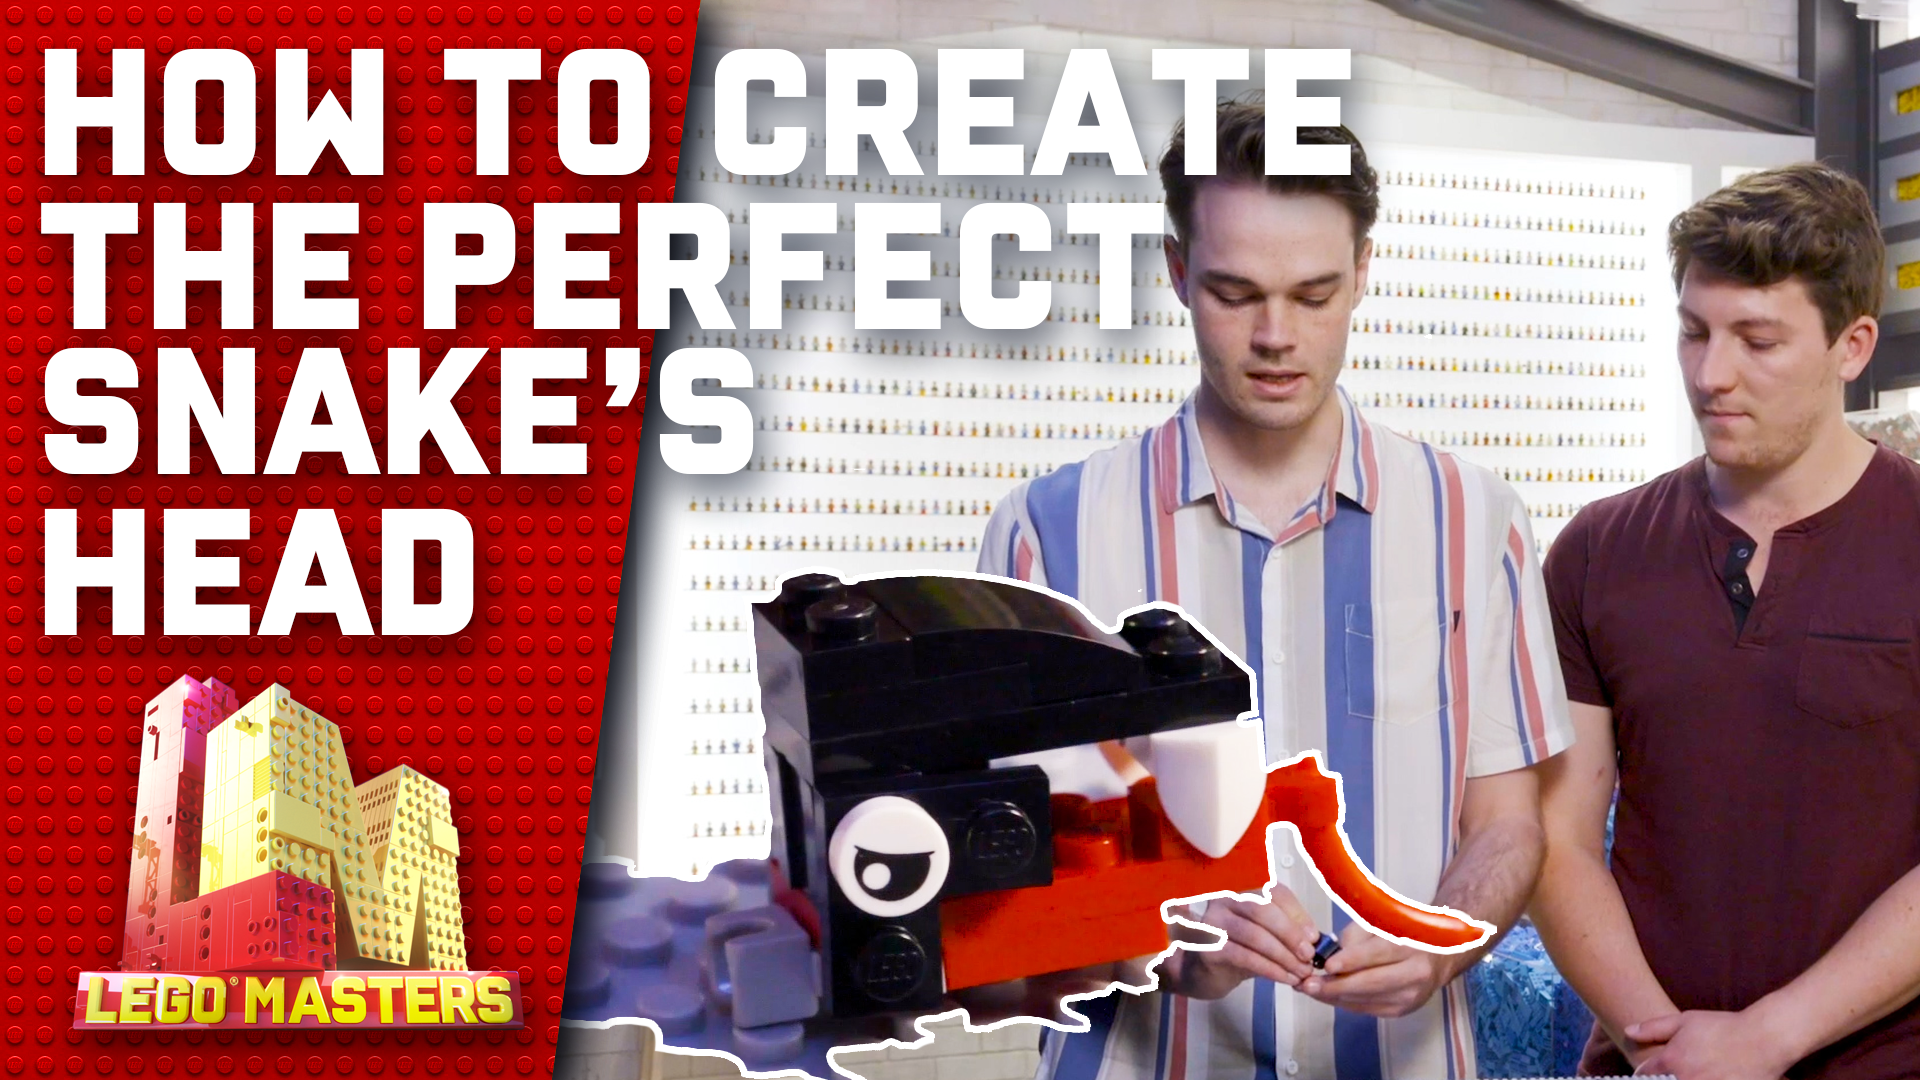 Michael and Harrison reveal how to create a LEGO snake head